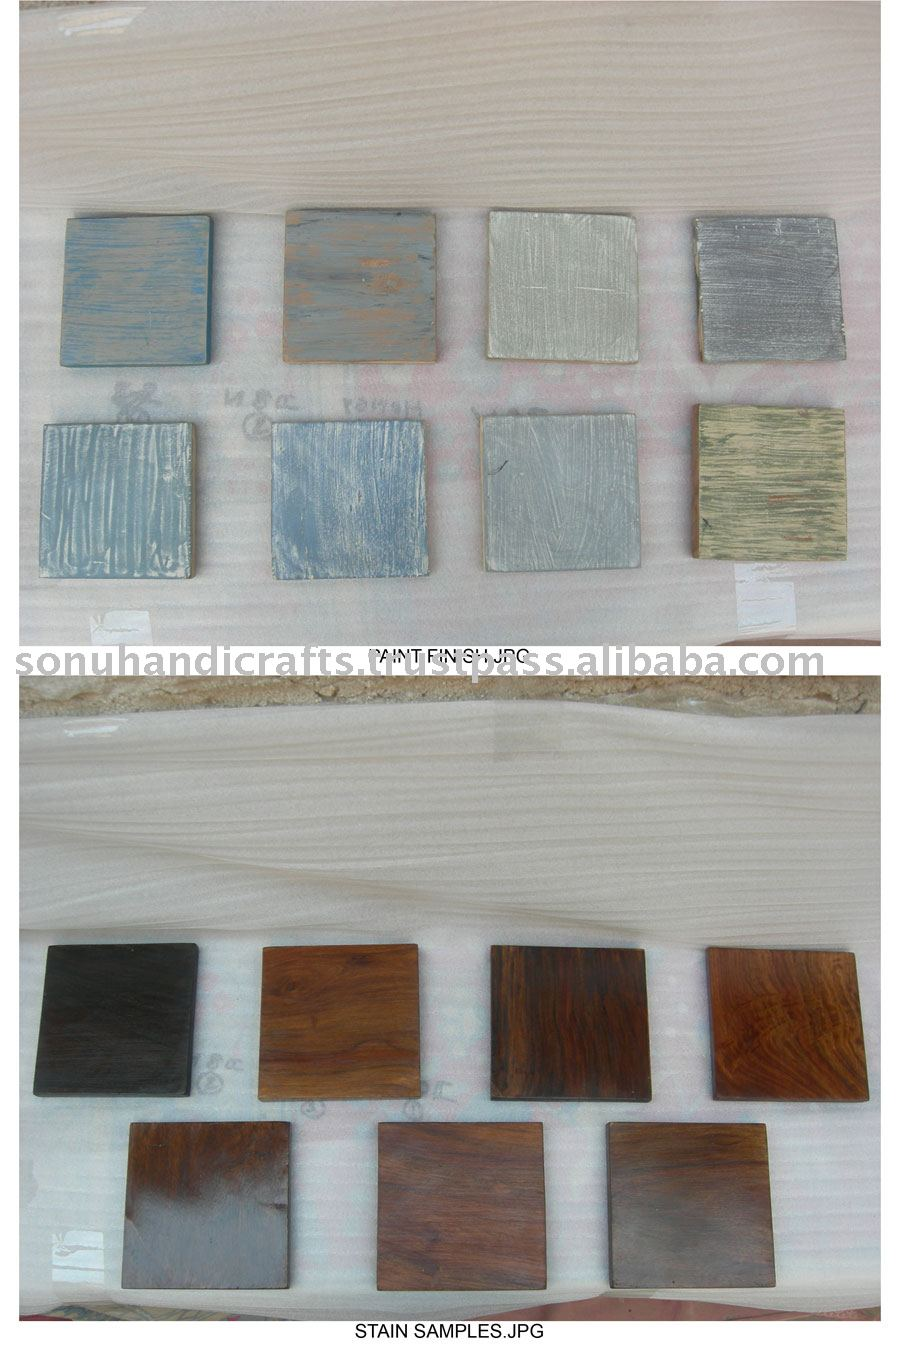 FURNITURE FINISHES SAMPLE PAINT